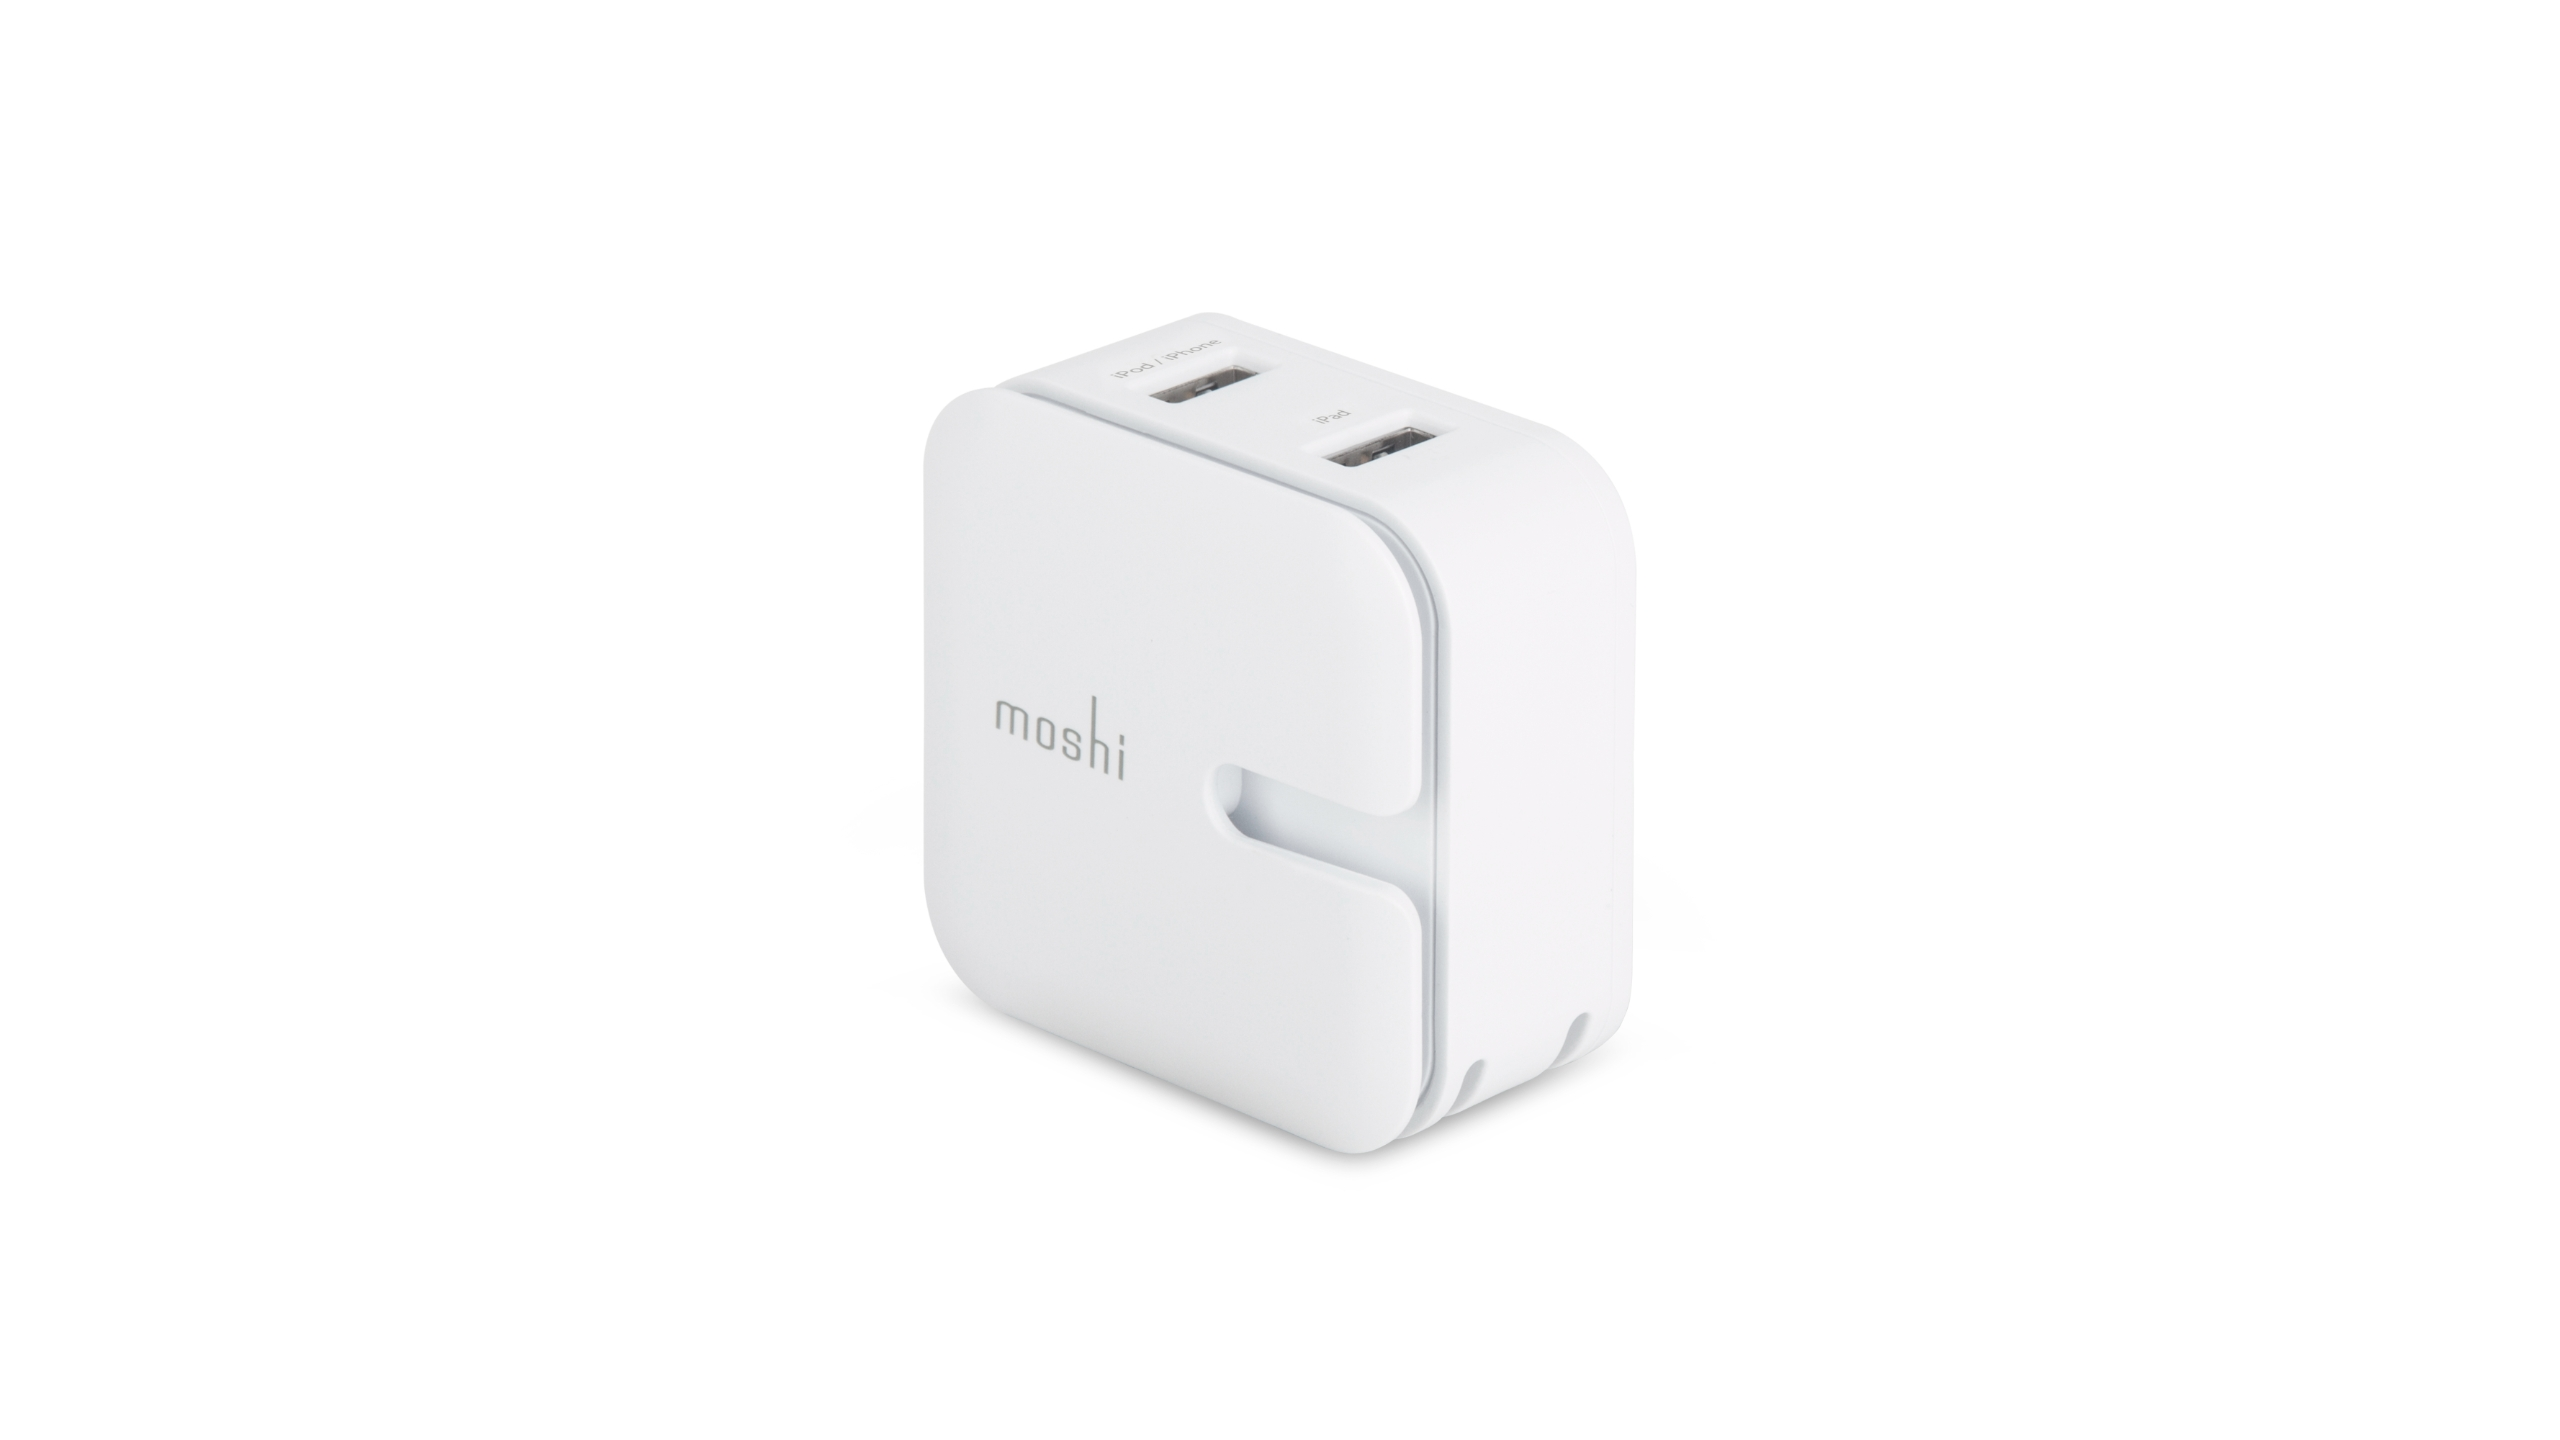 Rewind 2 USB Wall Charger-image